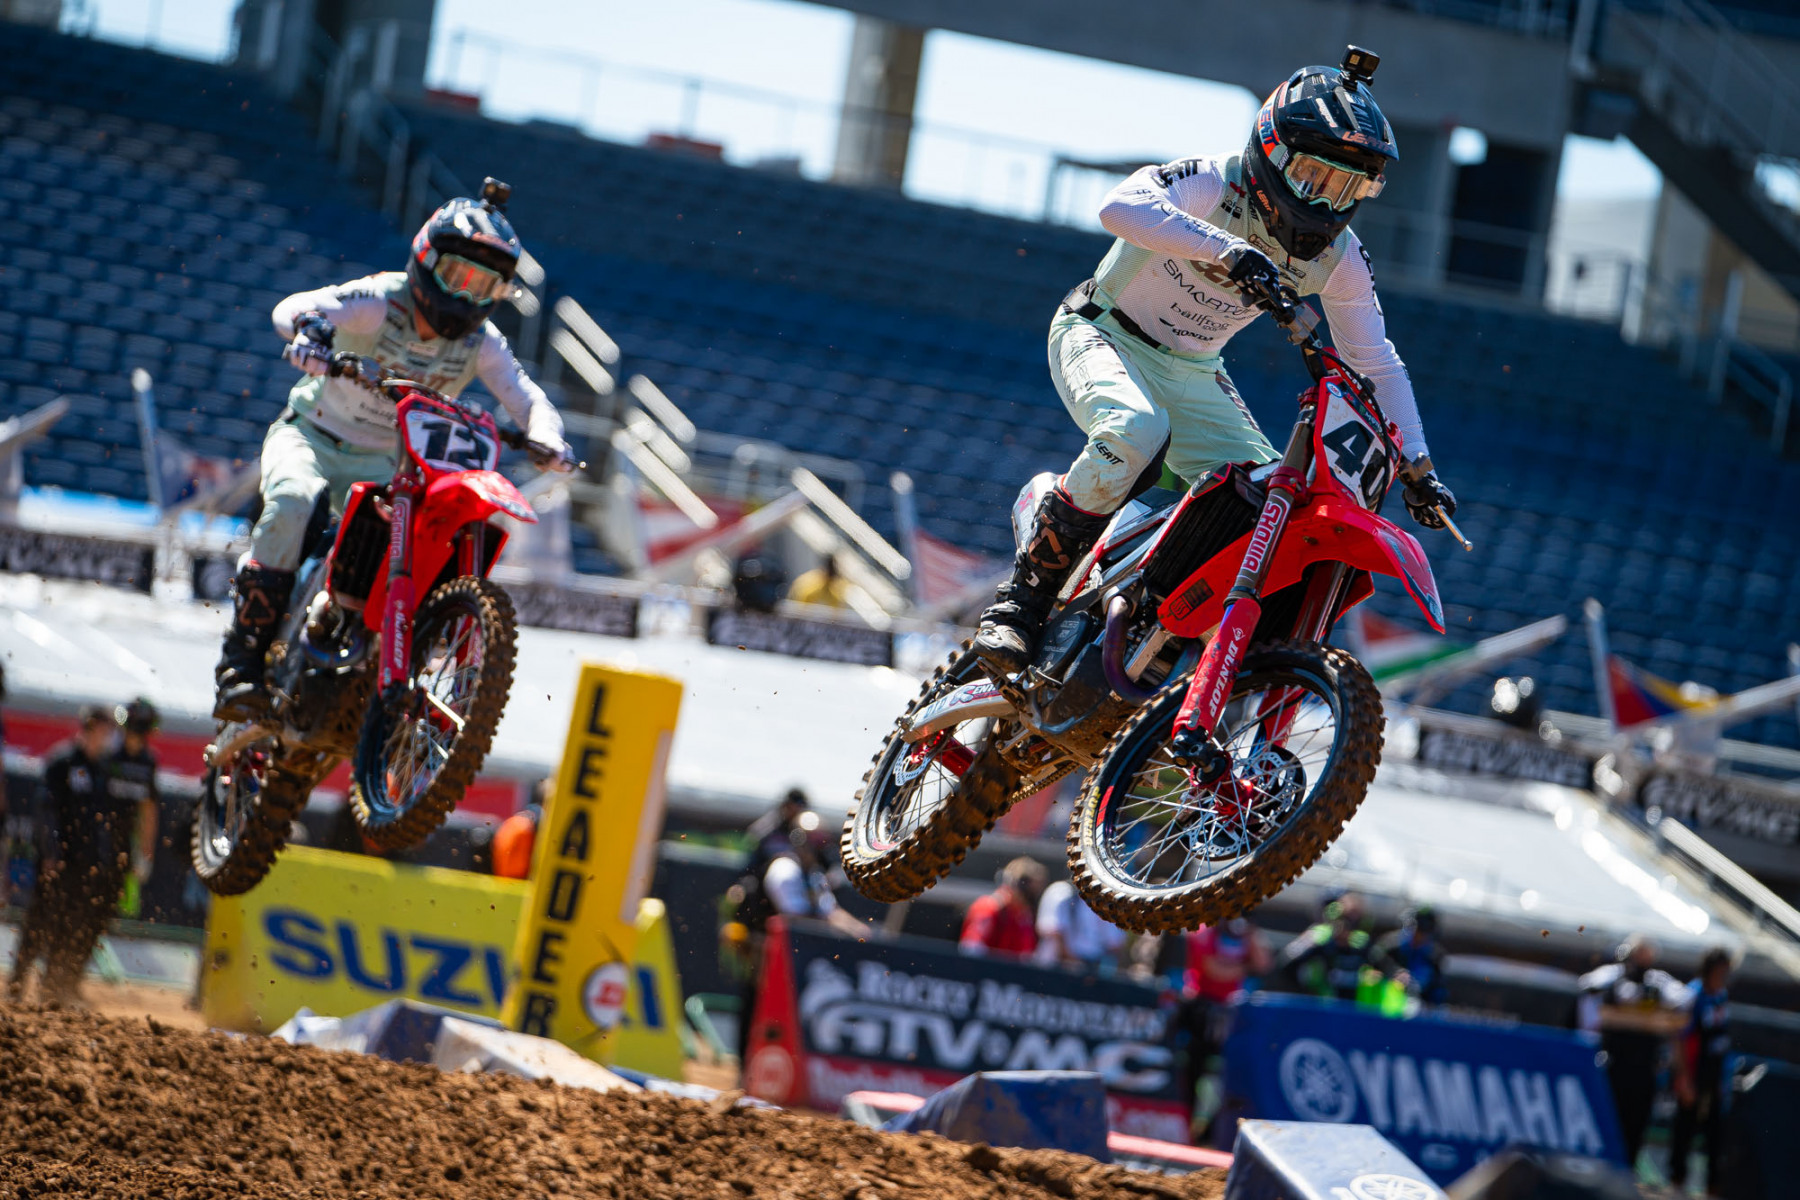 2021-ORLANDO-TWO-SUPERCROSS_KICKSTART_1500